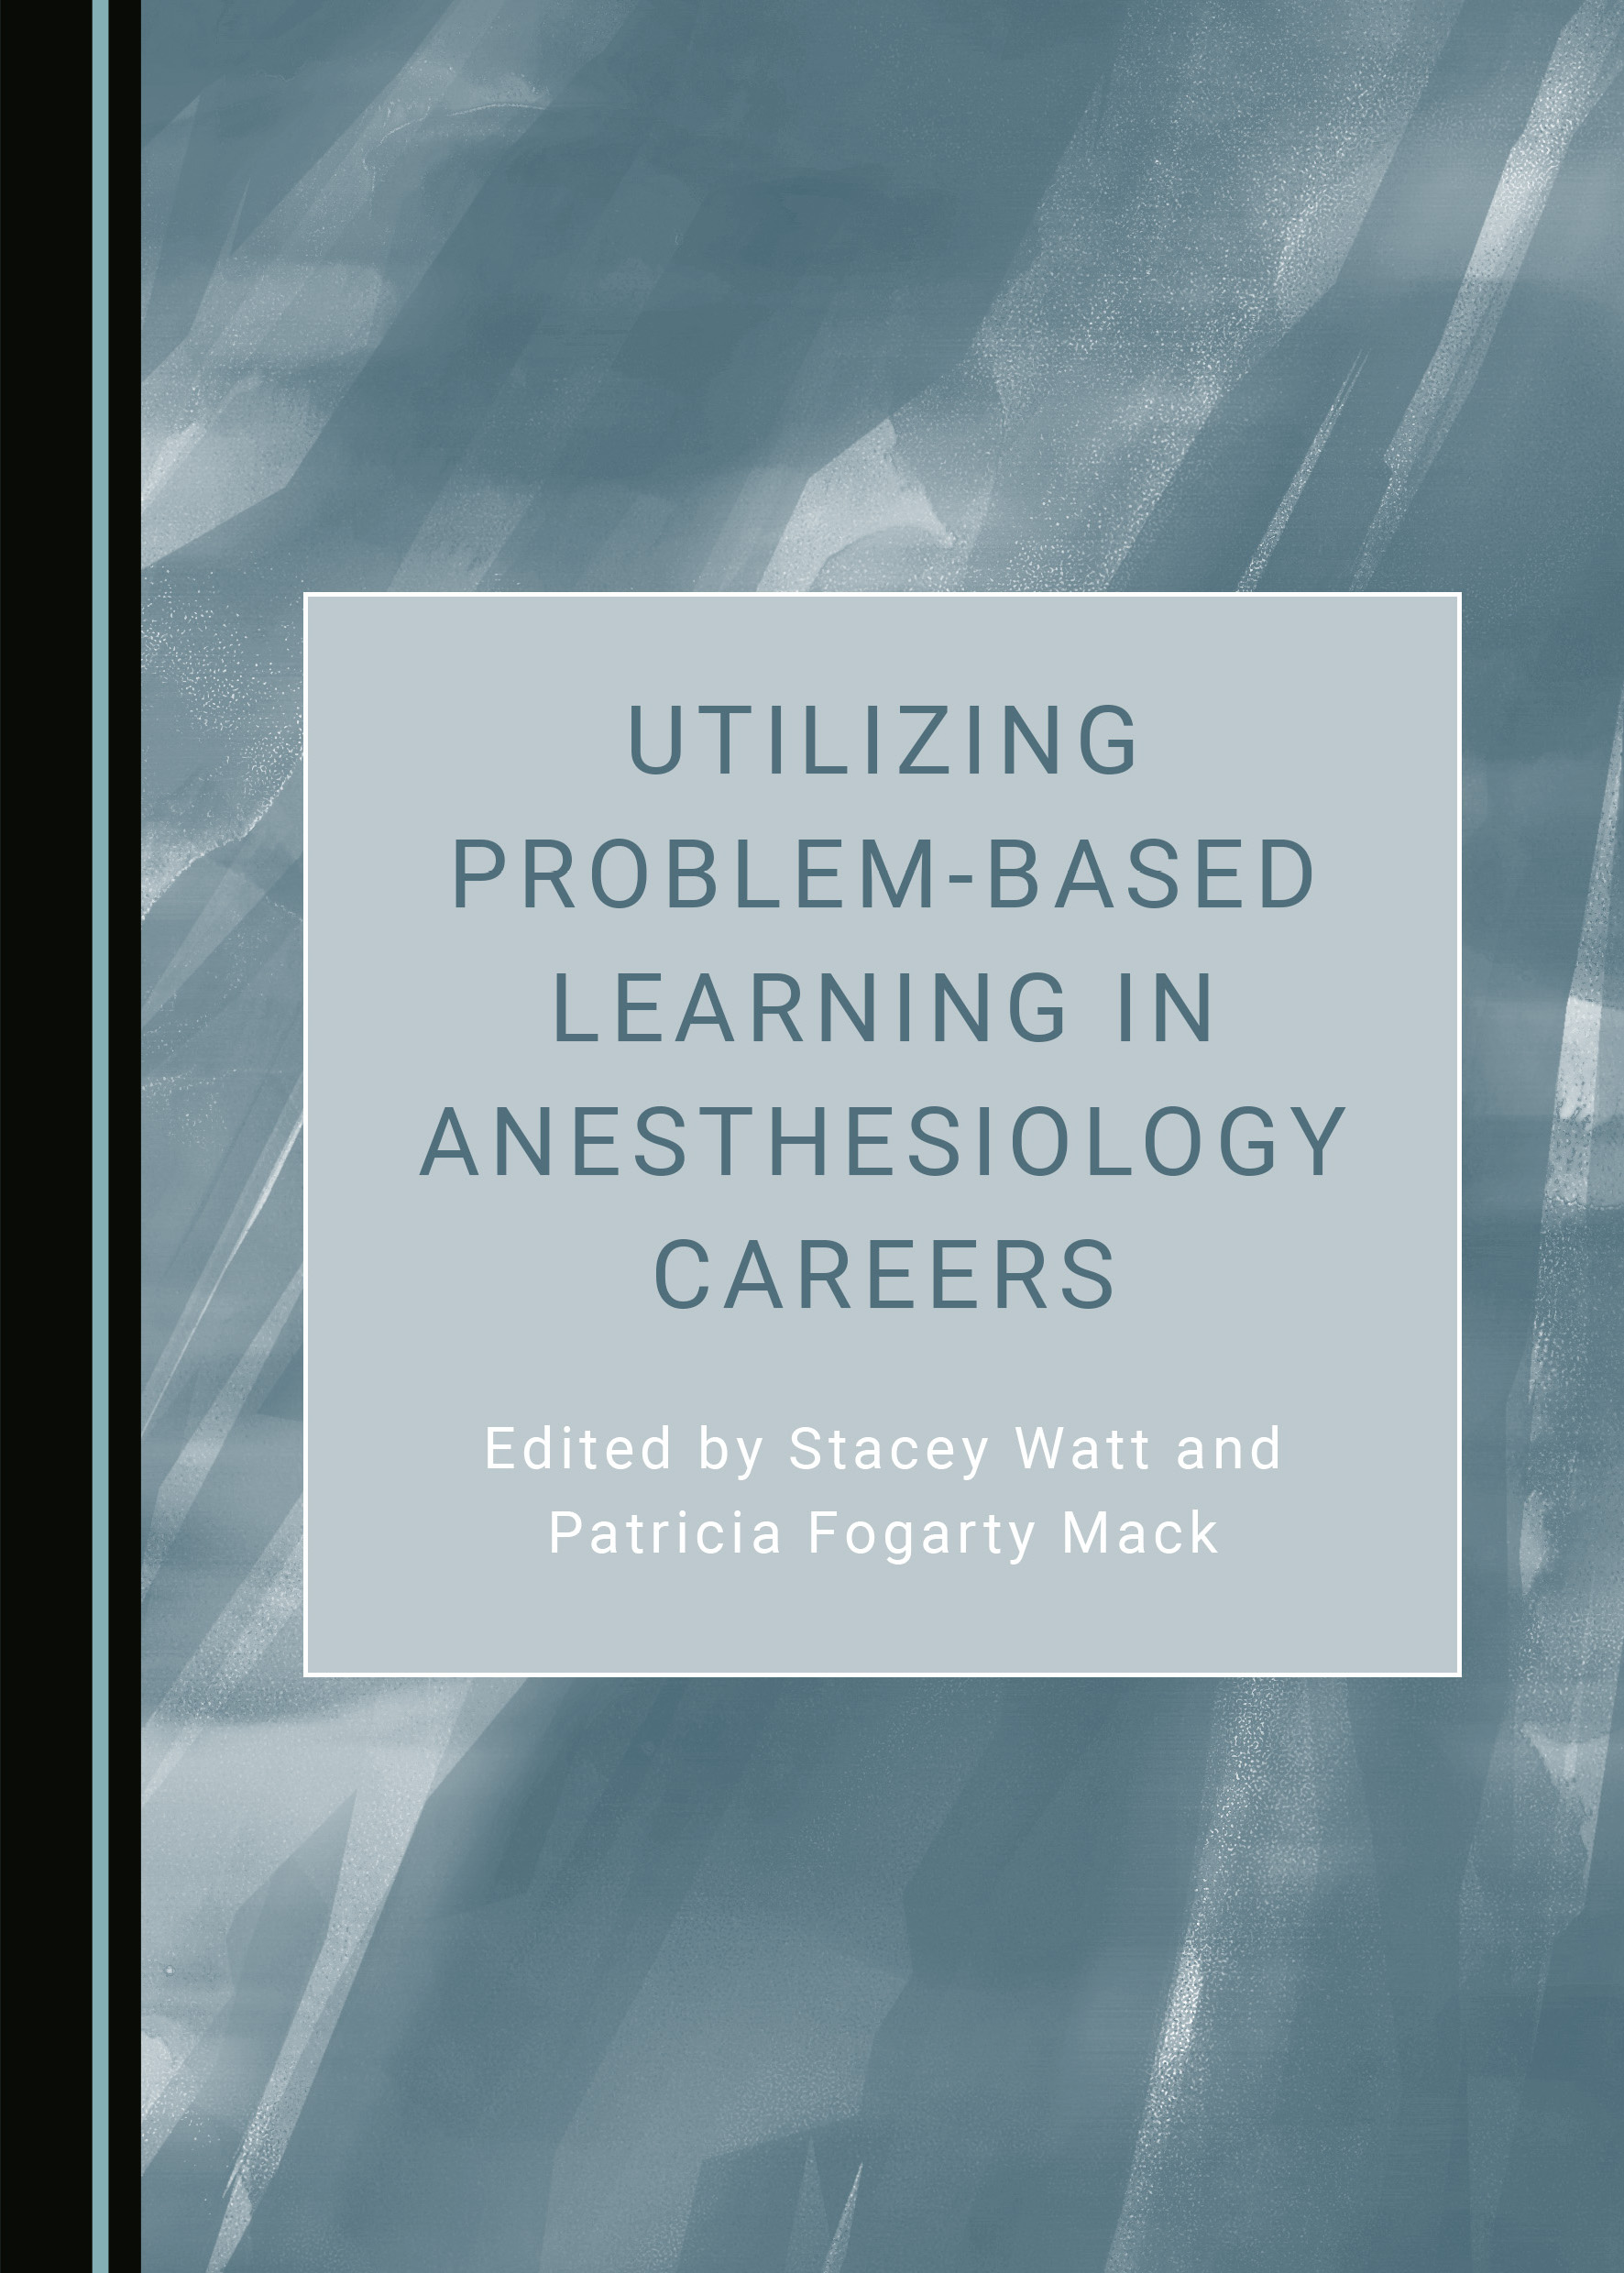 Utilizing Problem-Based Learning in Anesthesiology Careers